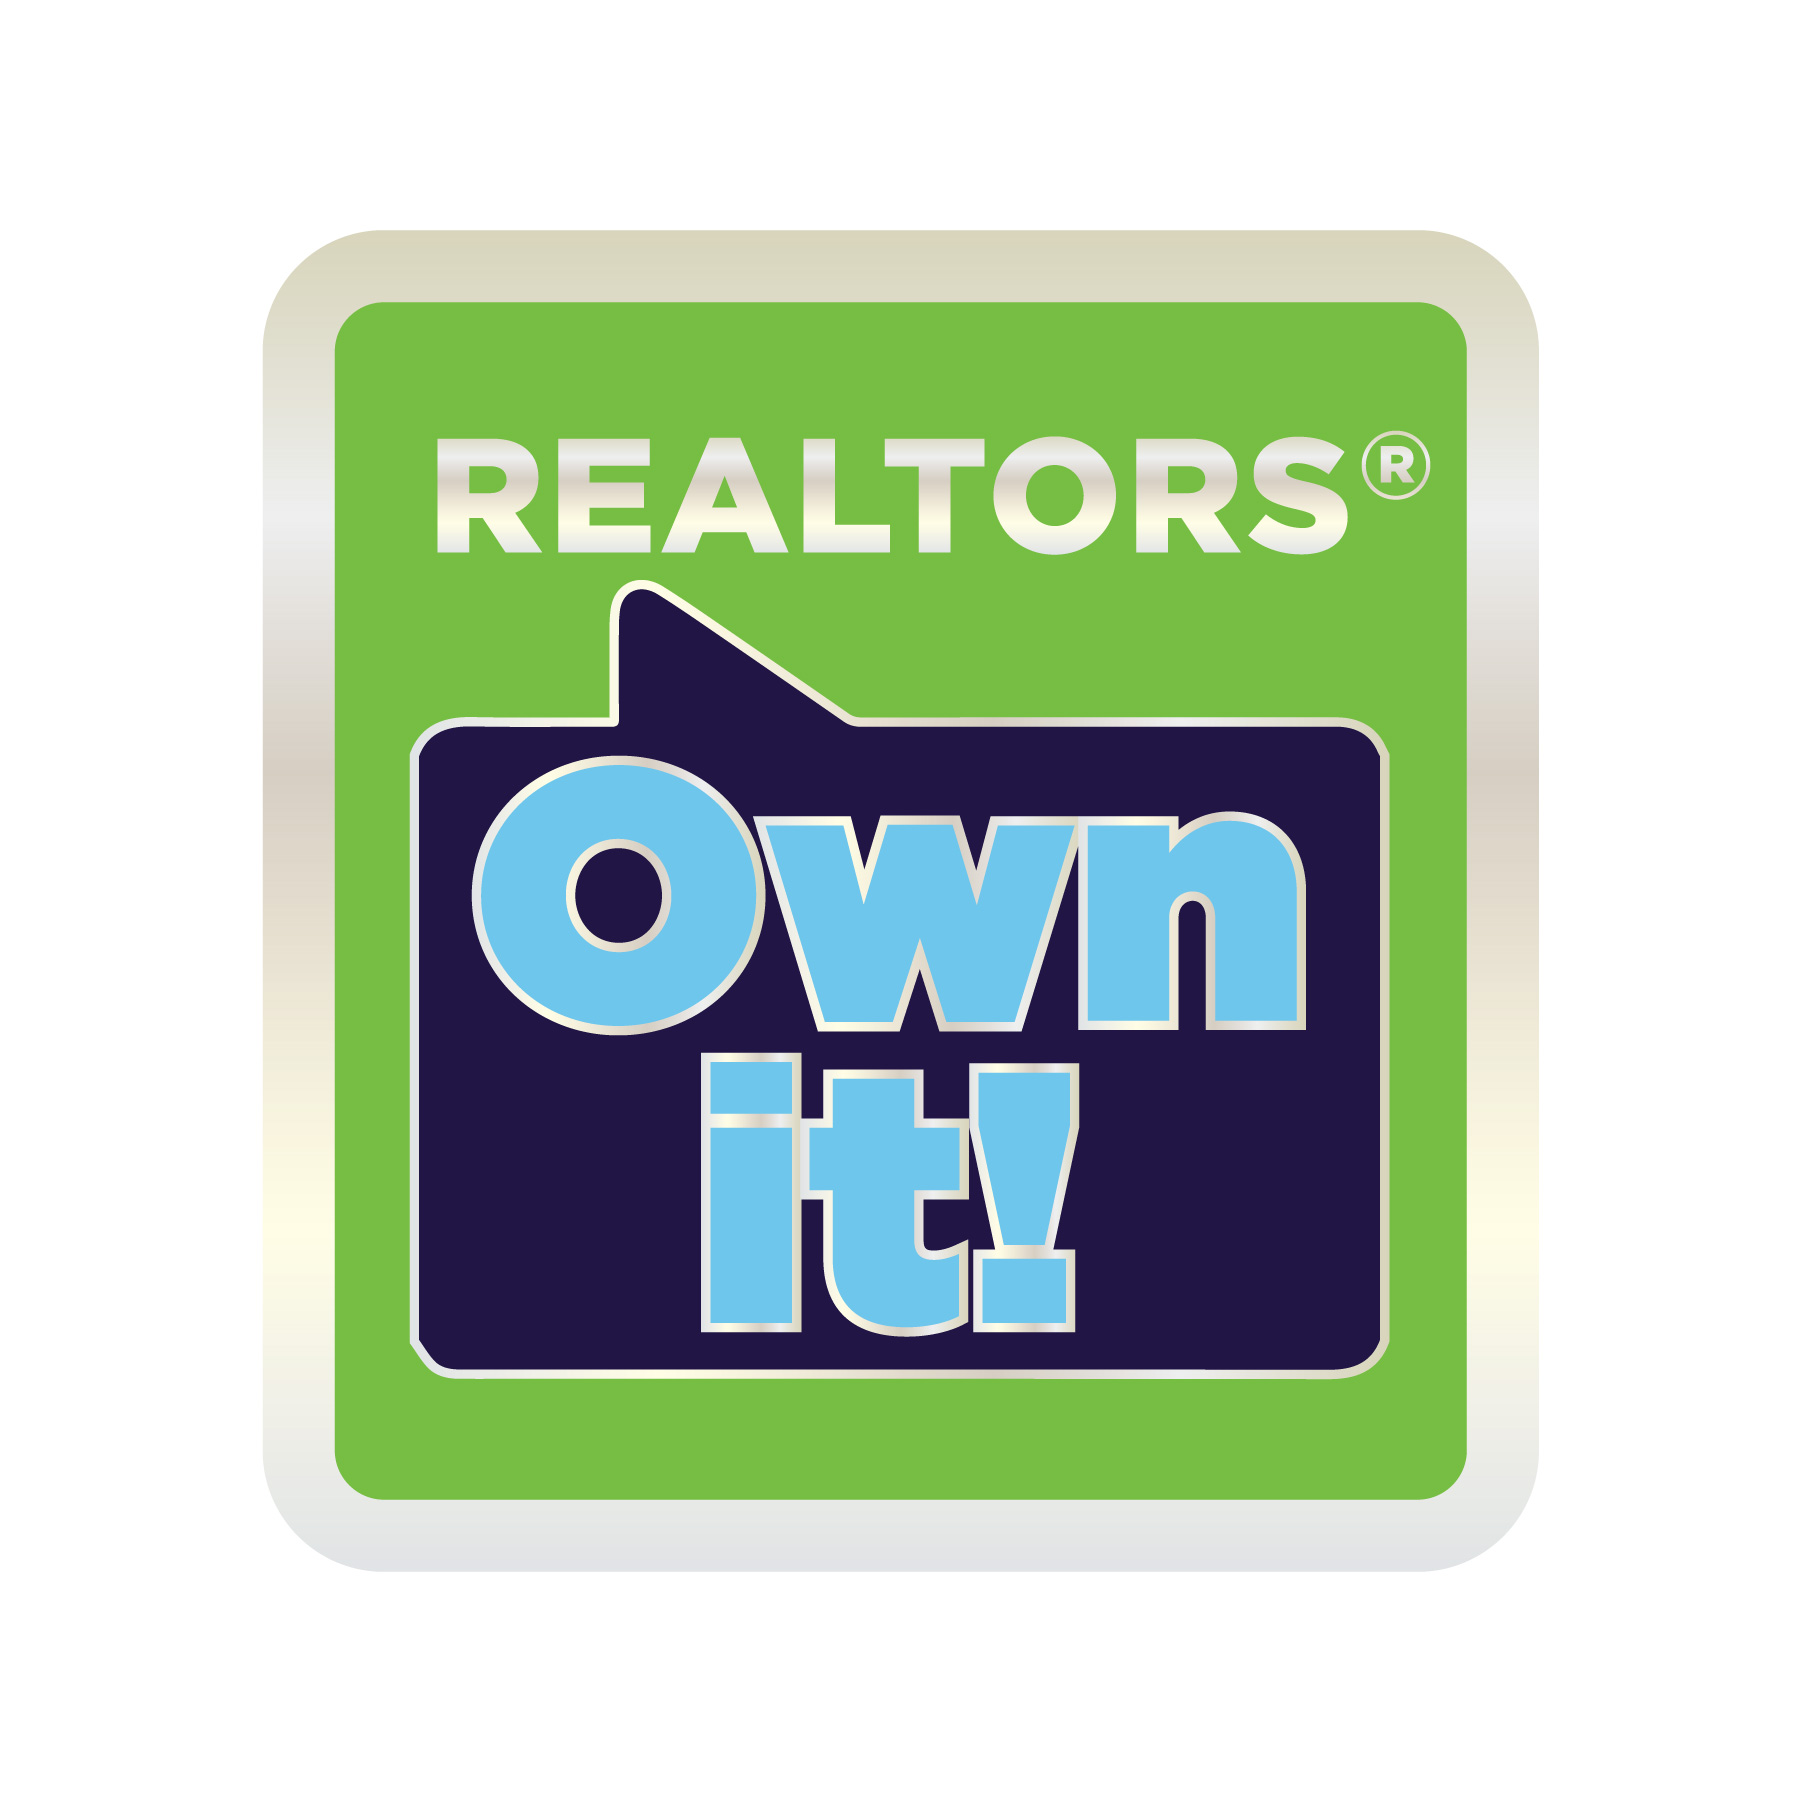 REALTORS® Own It! Lapel Pin pins, magnetic, realtors, lapels, sticks, homes, for sale, sales, officials, sponsors, different, gold, goldtones,ROIS,ROI,owens,owns,its